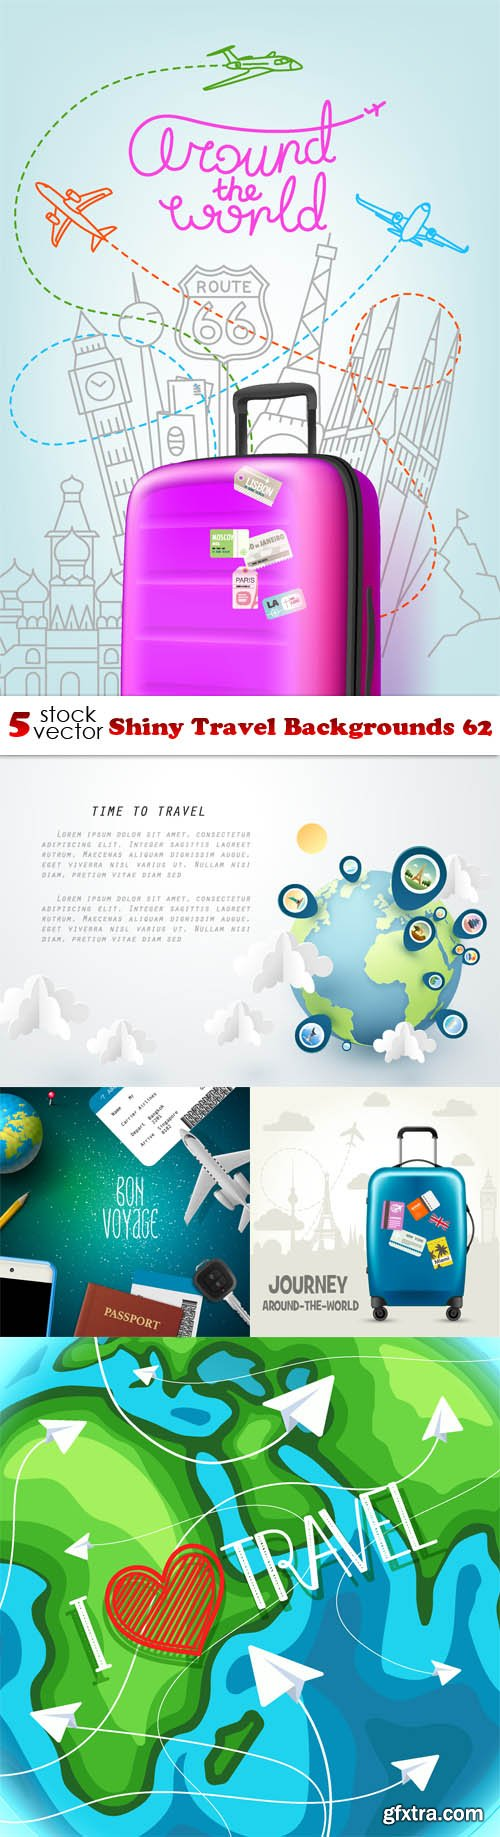 Vectors - Shiny Travel Backgrounds 62